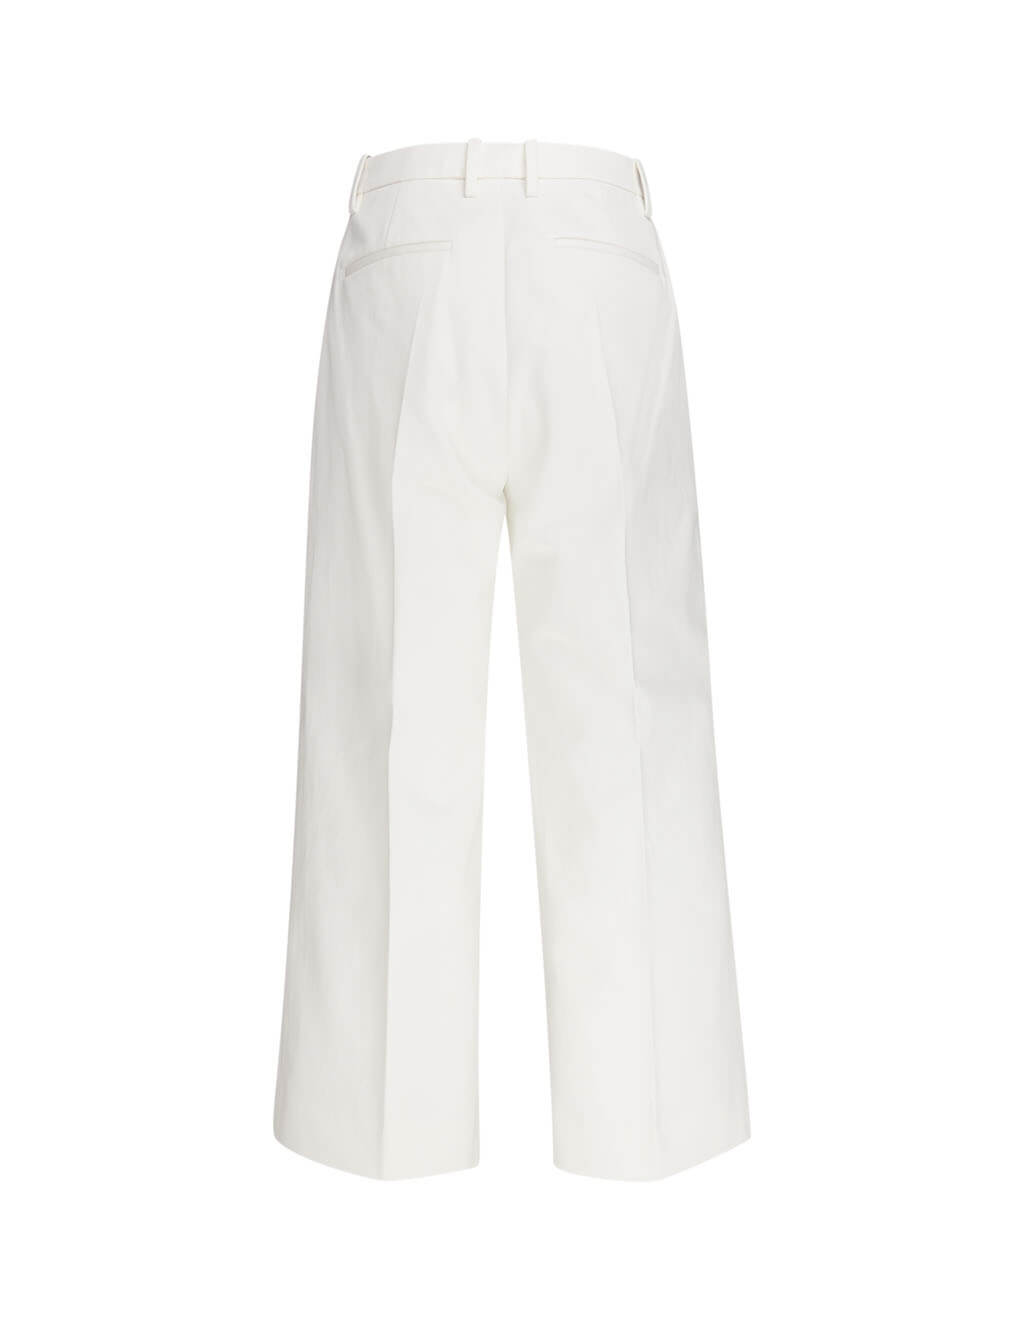 Moncler Women's Giulio Fashion Natural Formal Trousers 0932A70200V0064034